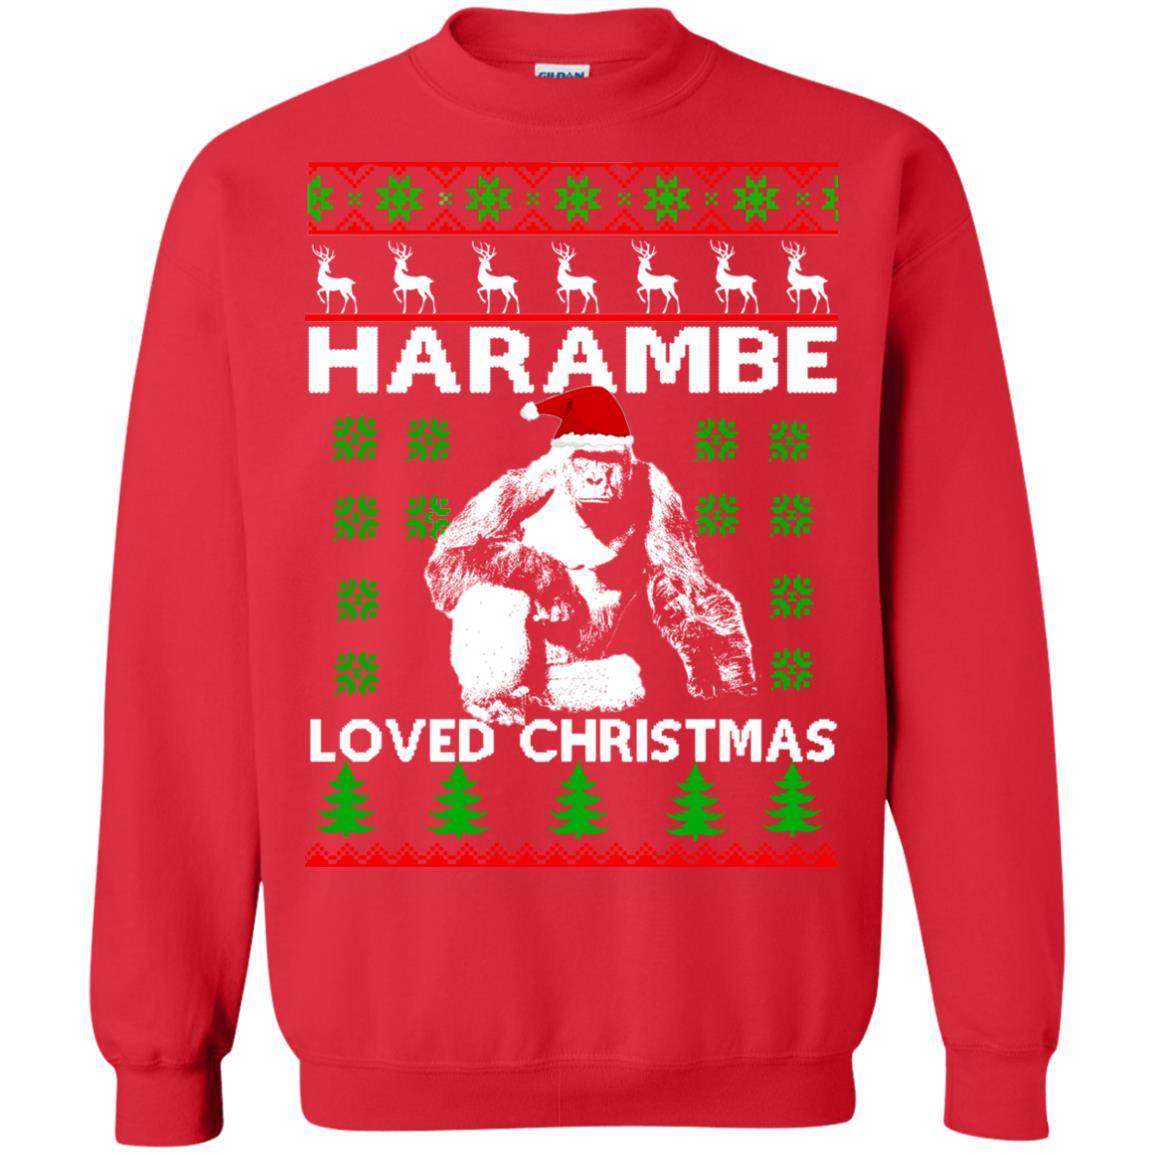 image 816 - Harambe Loved Christmas Sweater, Shirt, Hoodie